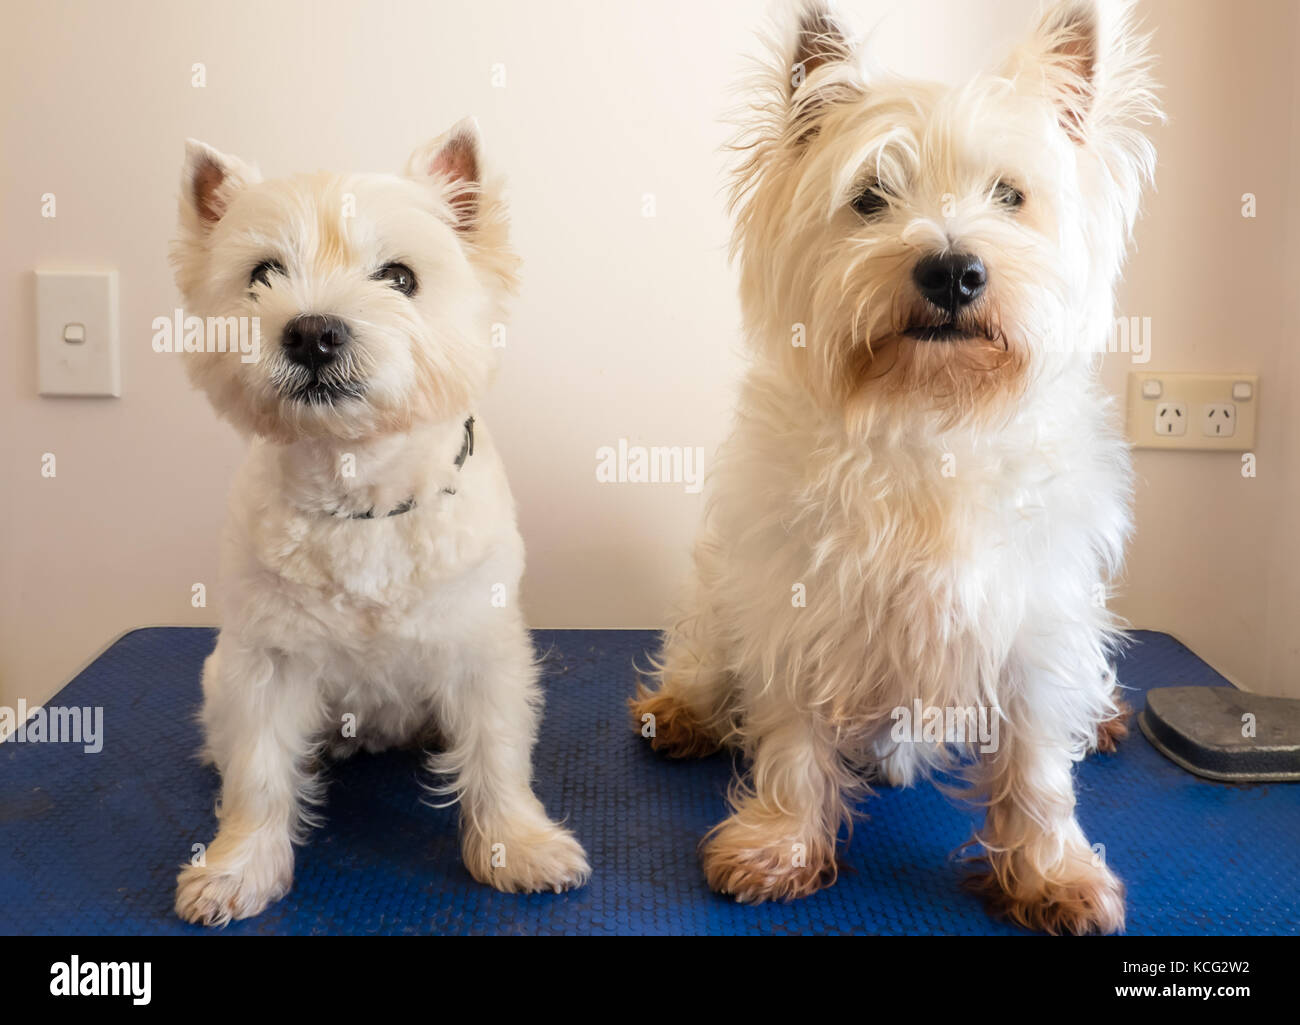 two west highland white terrier westie dogs on grooming table, one